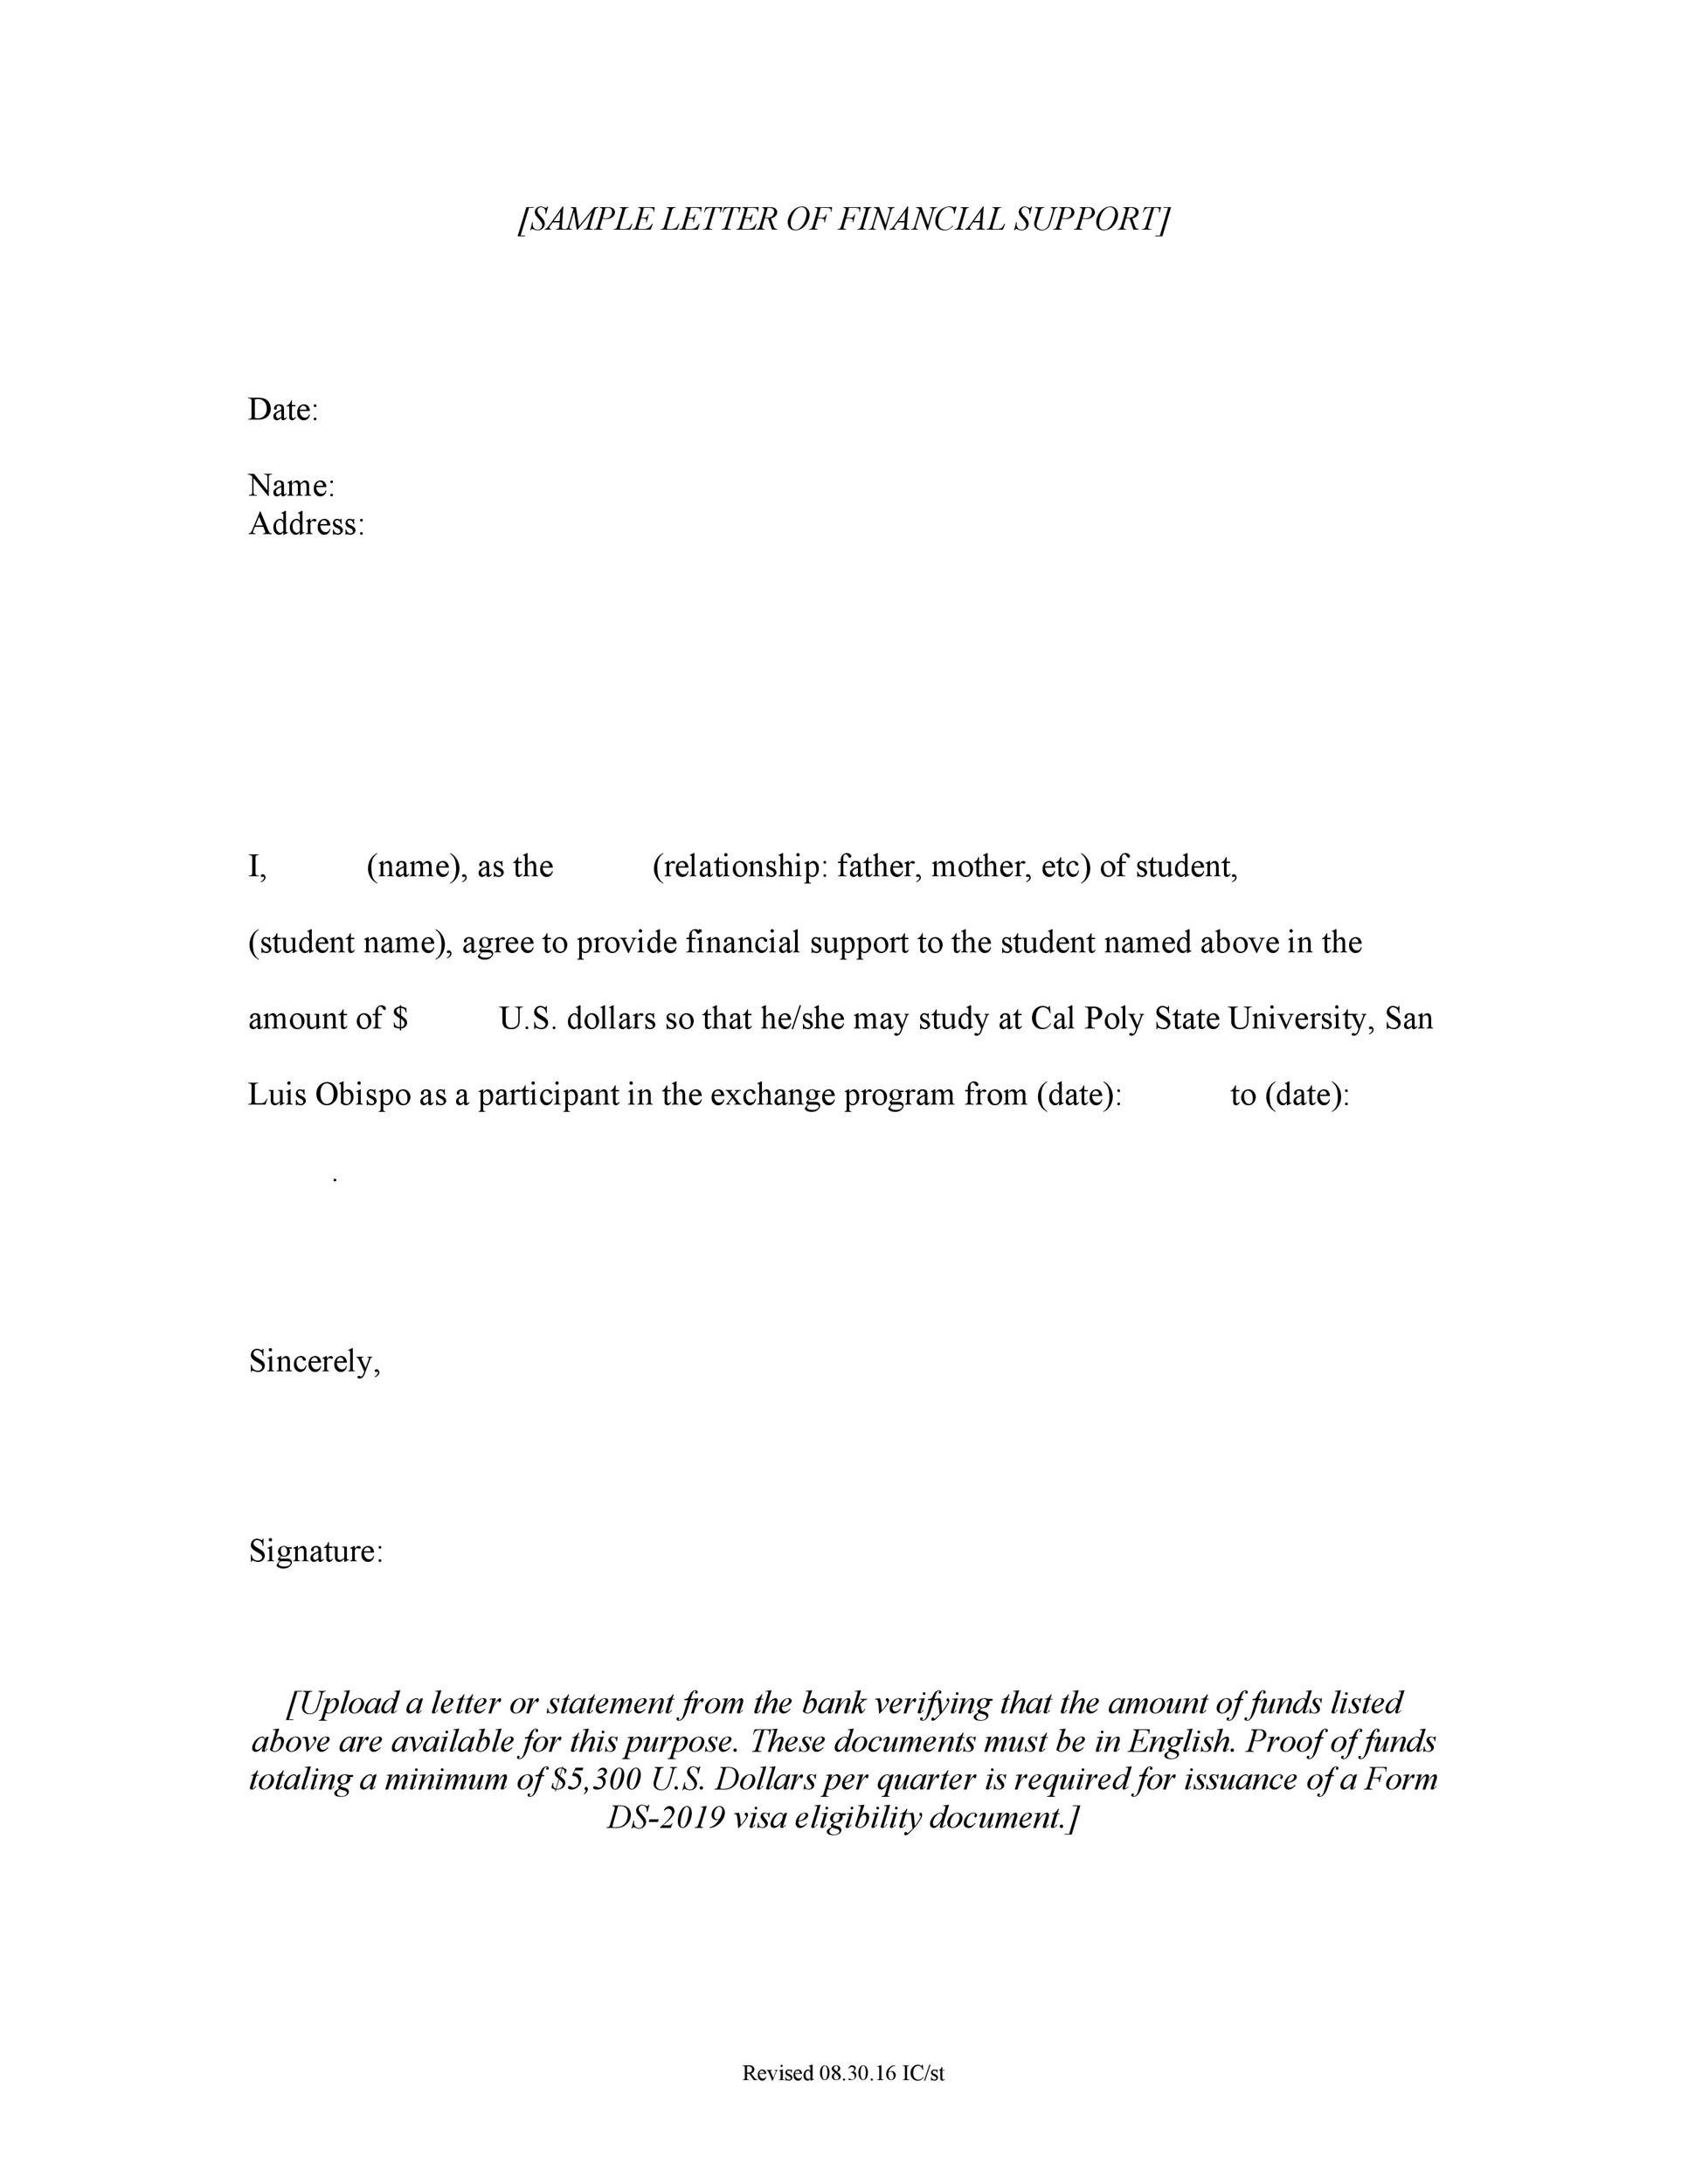 Support letter sample how to format cover letter related for support letter sample spiritdancerdesigns Images